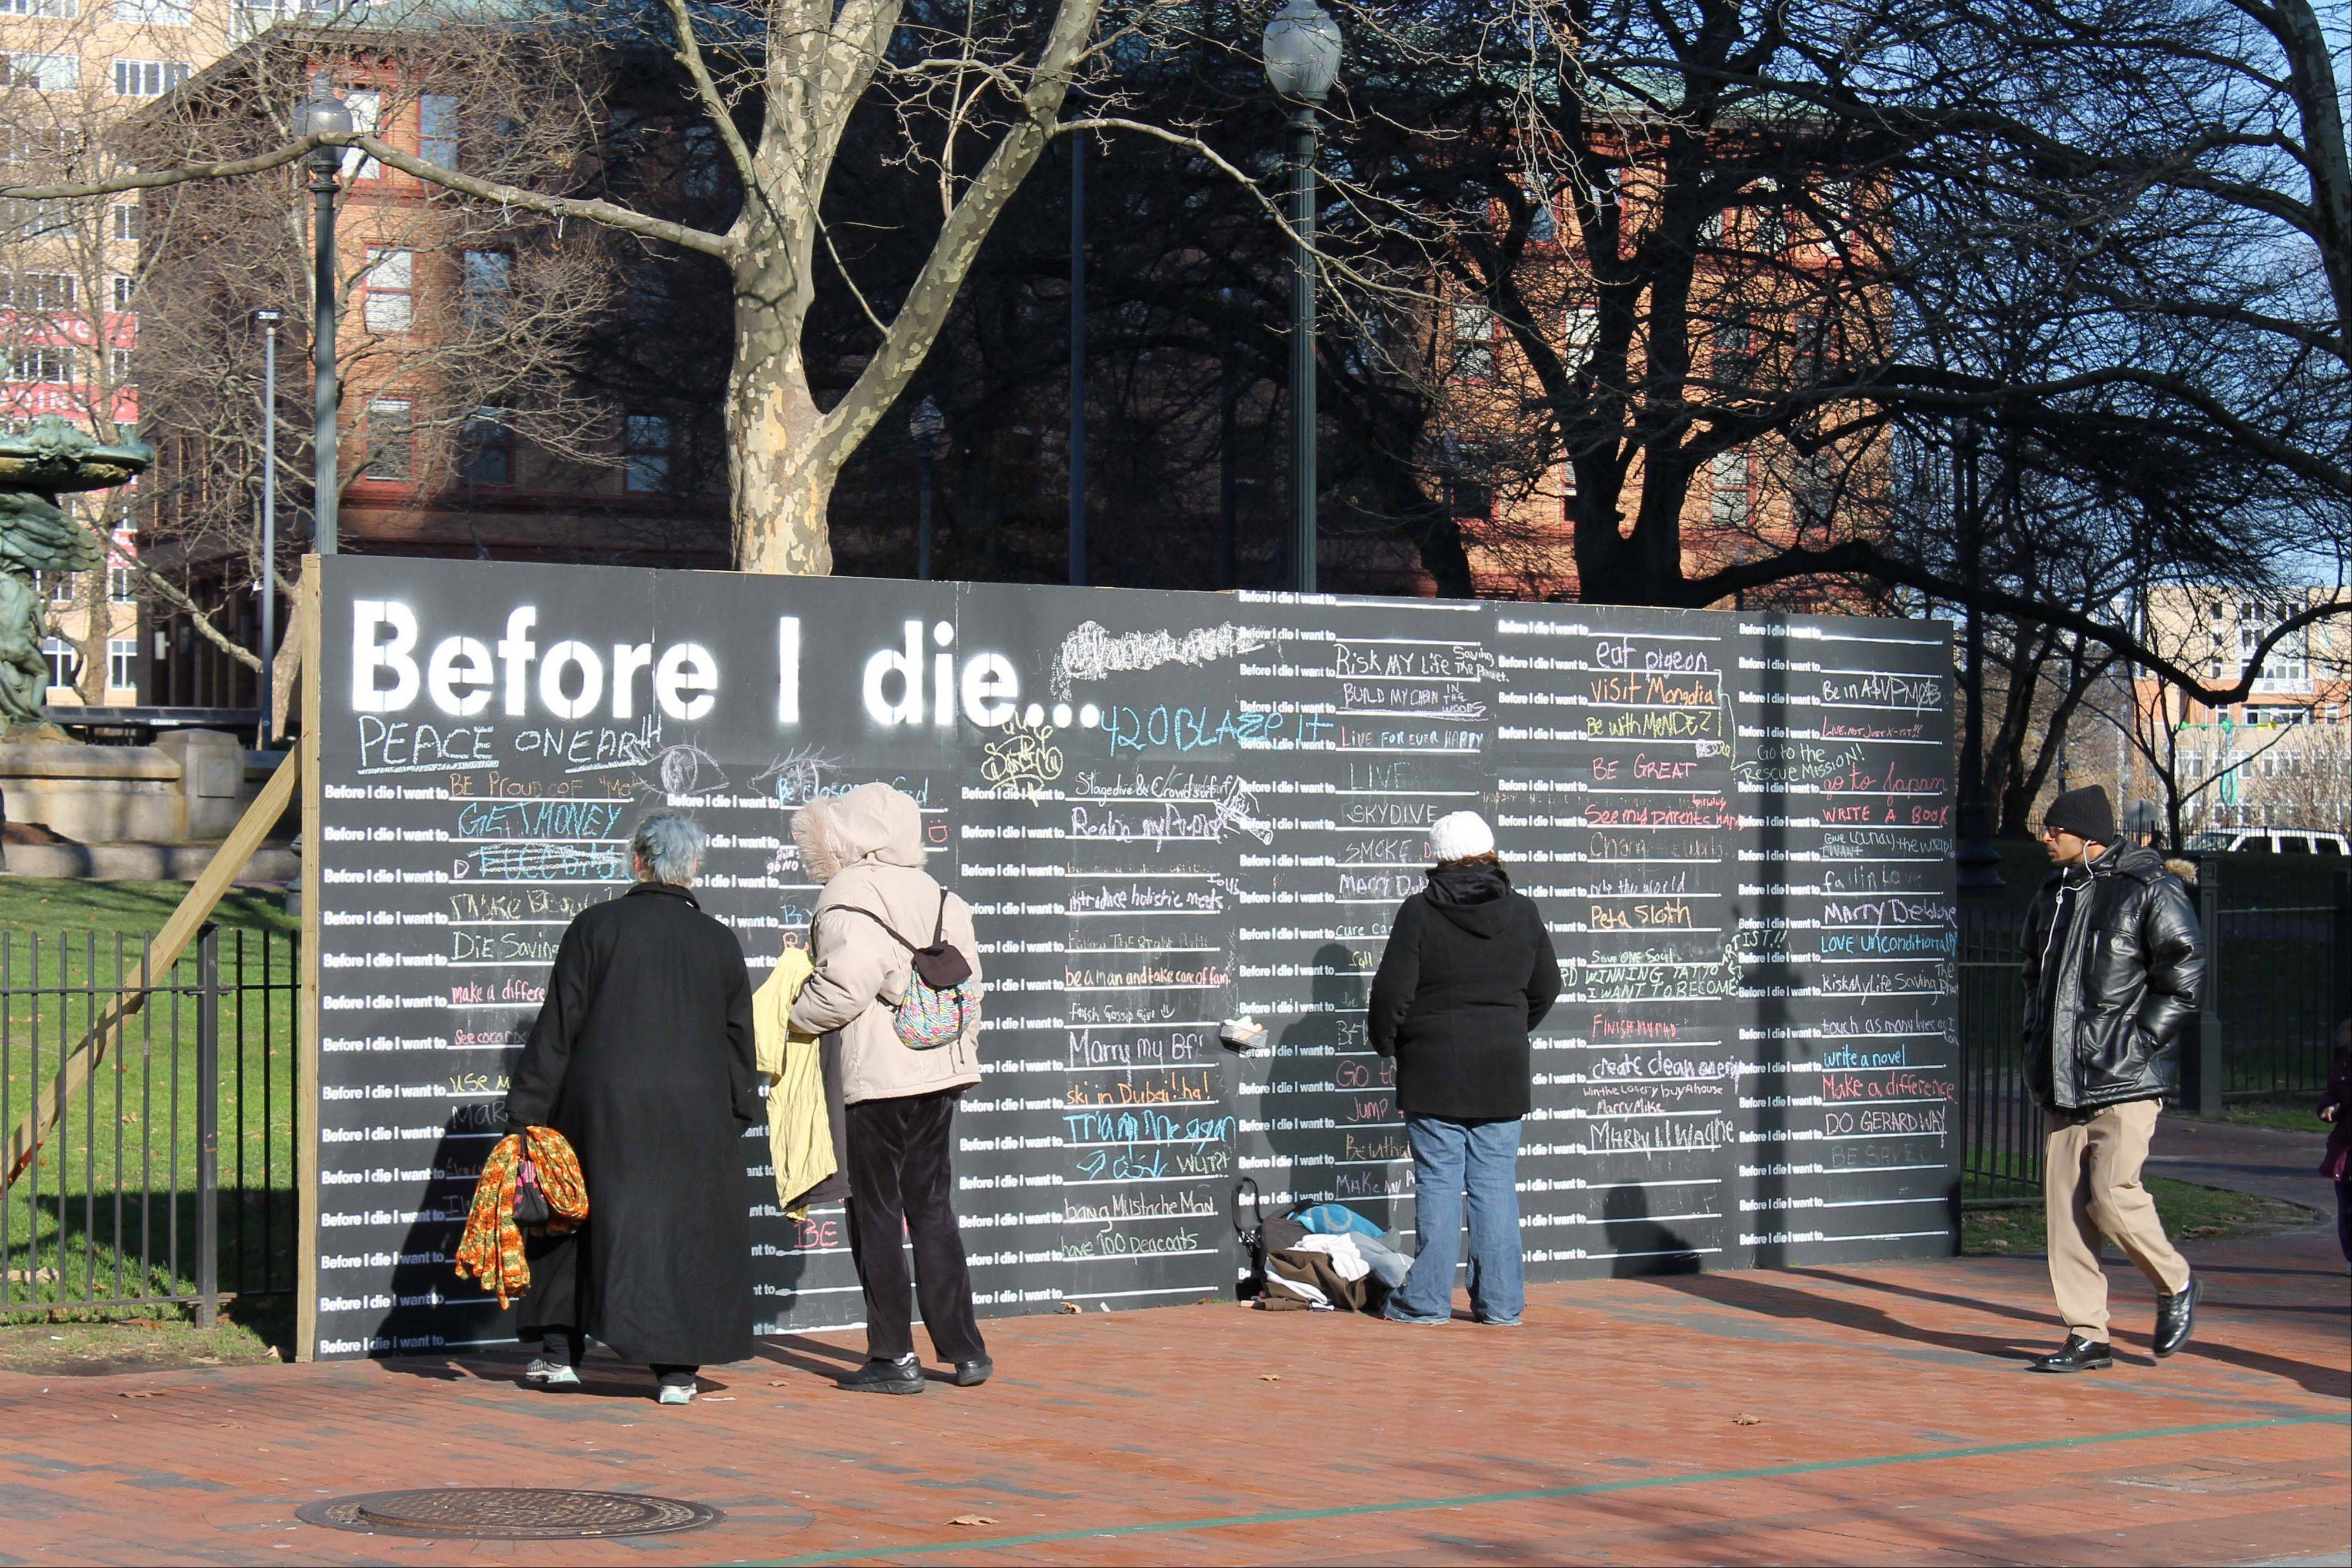 People finish the sentence �Before I die . . .� on a large blackboard in Providence, R.I. Since 2011, 400 such walls have gone up in the United States as well as in 60 other countries. The global phenomenon has oversized blackboards, painted on buildings and freestanding displays that invite those passing by to complete the sentence.